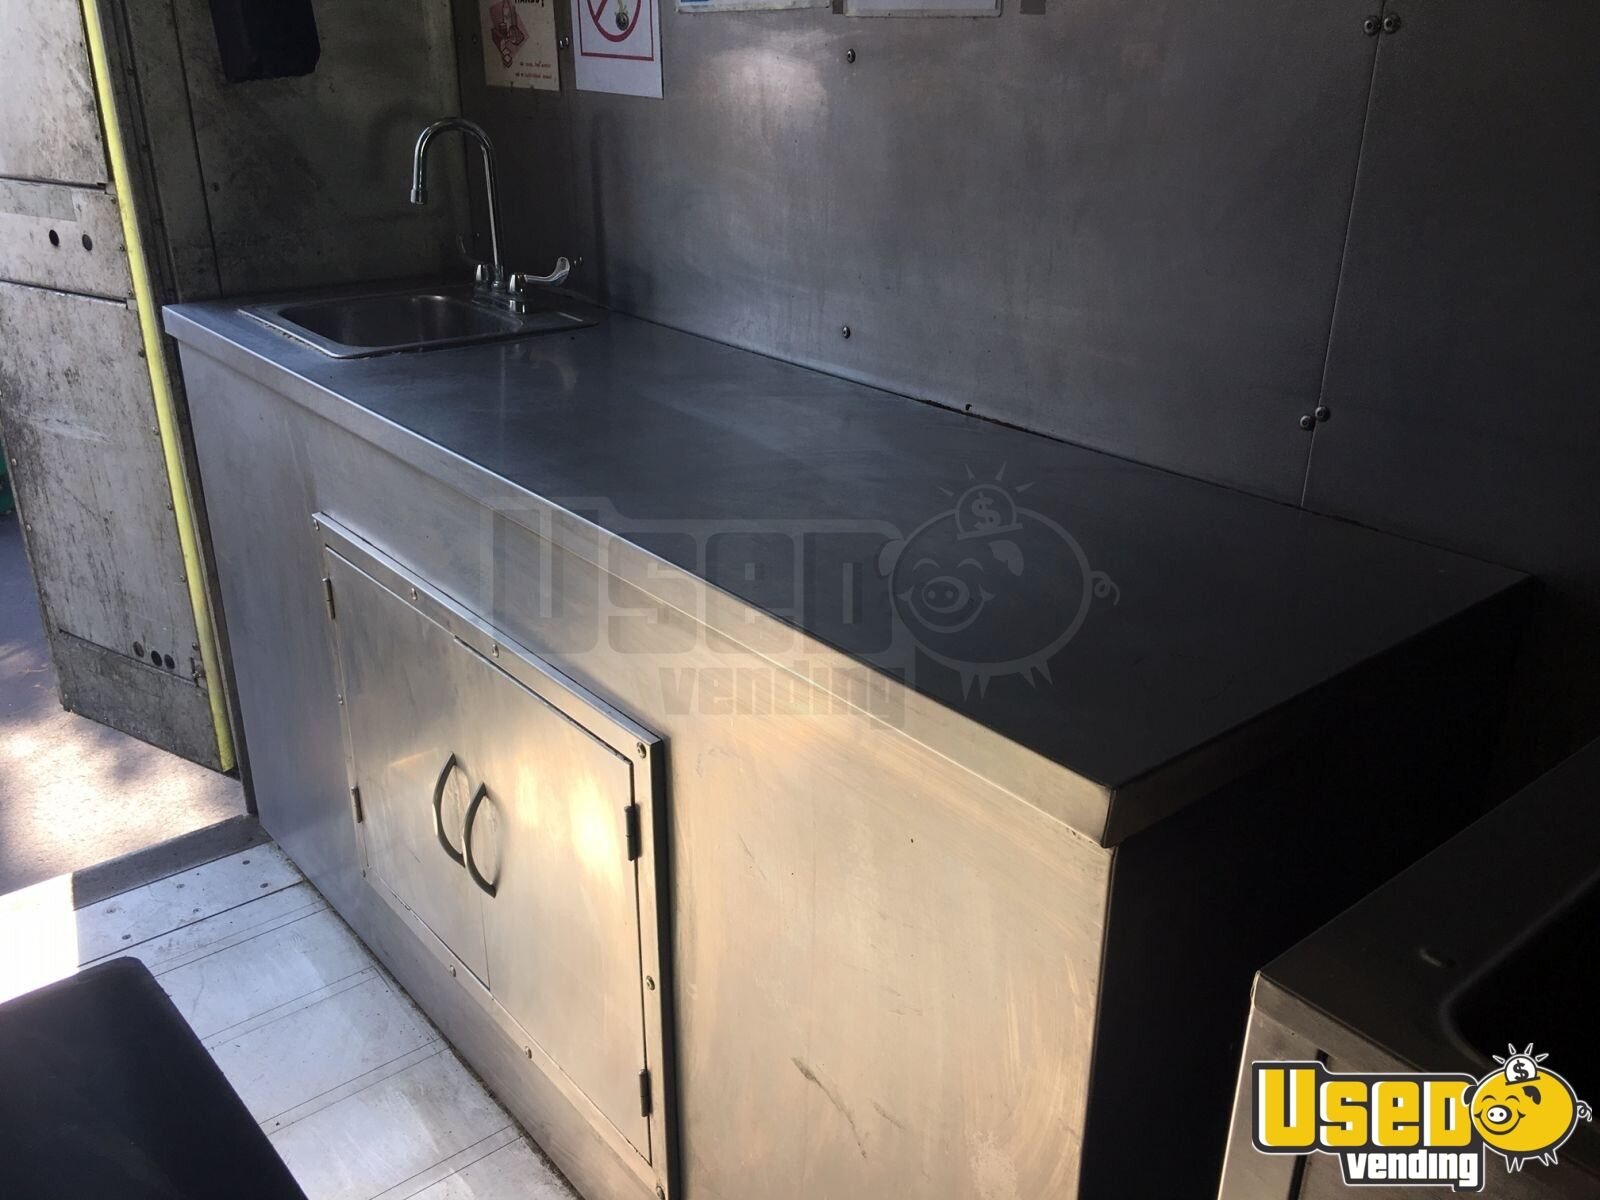 1999 P30 Kitchen Food Truck All-purpose Food Truck Exterior Customer Counter Pennsylvania Gas Engine for Sale - 7